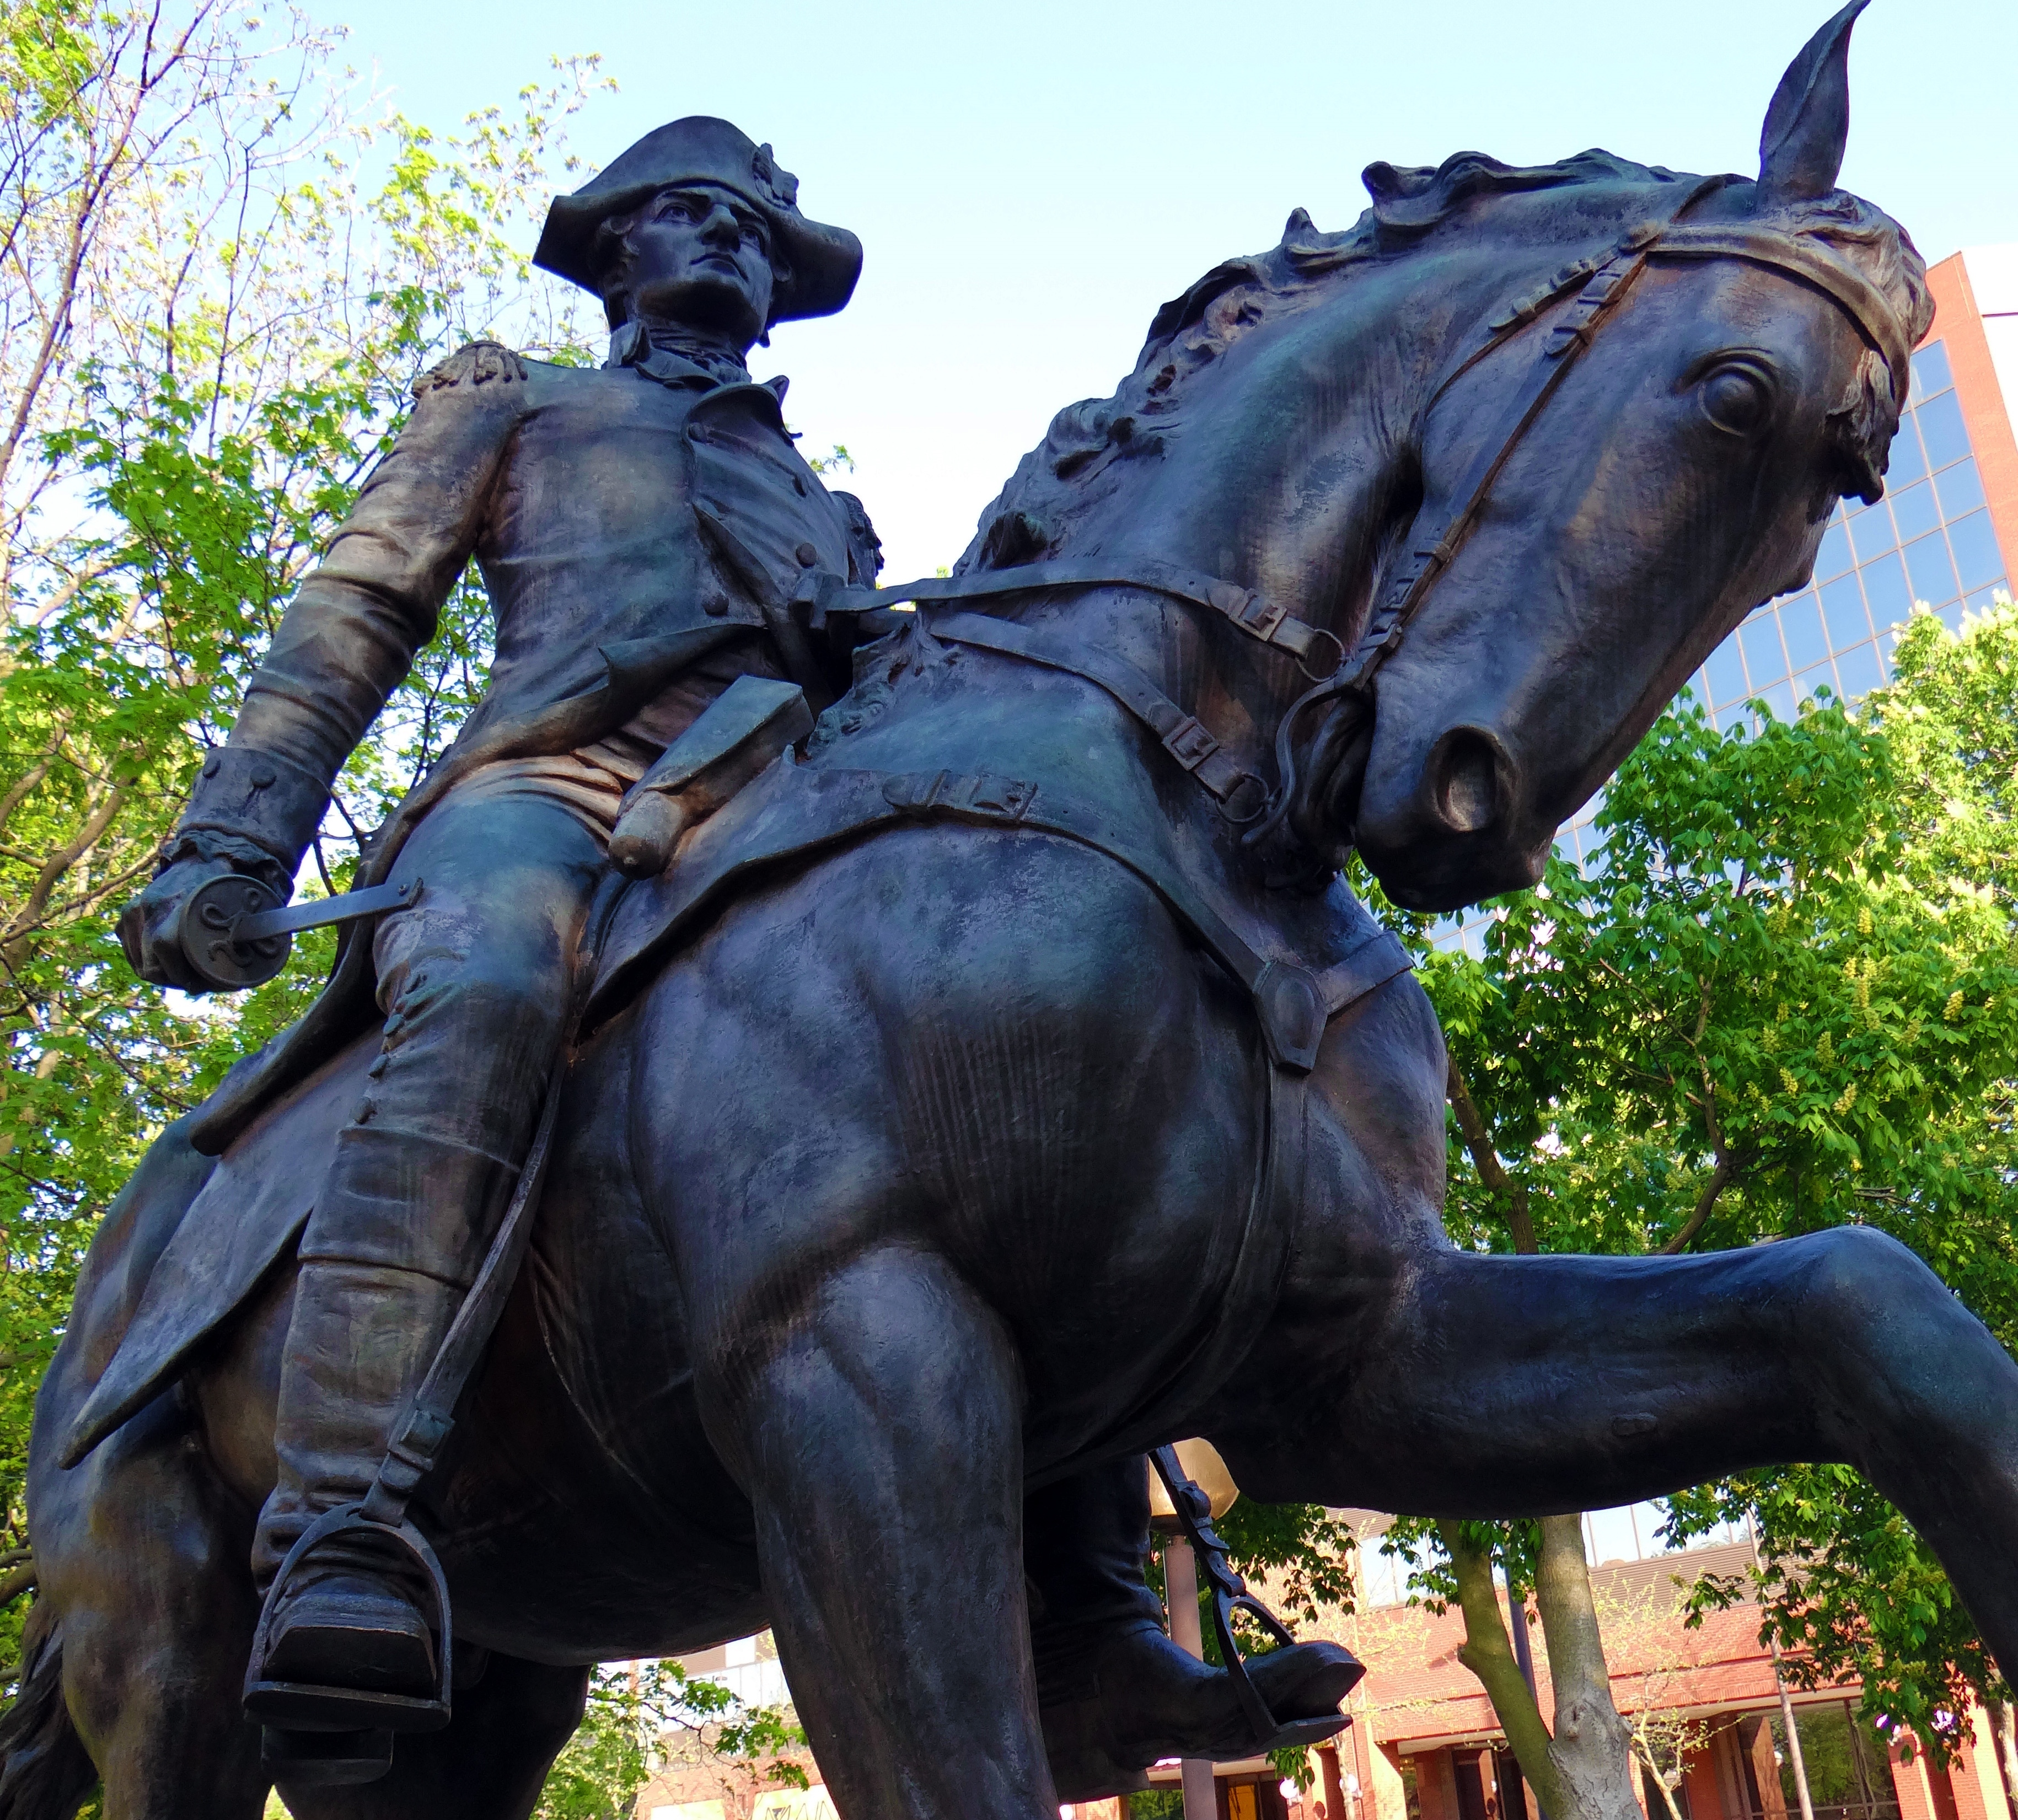 General Mad Anthony Wayne statue is located in Freimann Square in Fort Wayne, Indiana. The bronze equestrian statue was sculpted by George Etienne Ganiere in 1918, courtesy of Wikipedia Commons